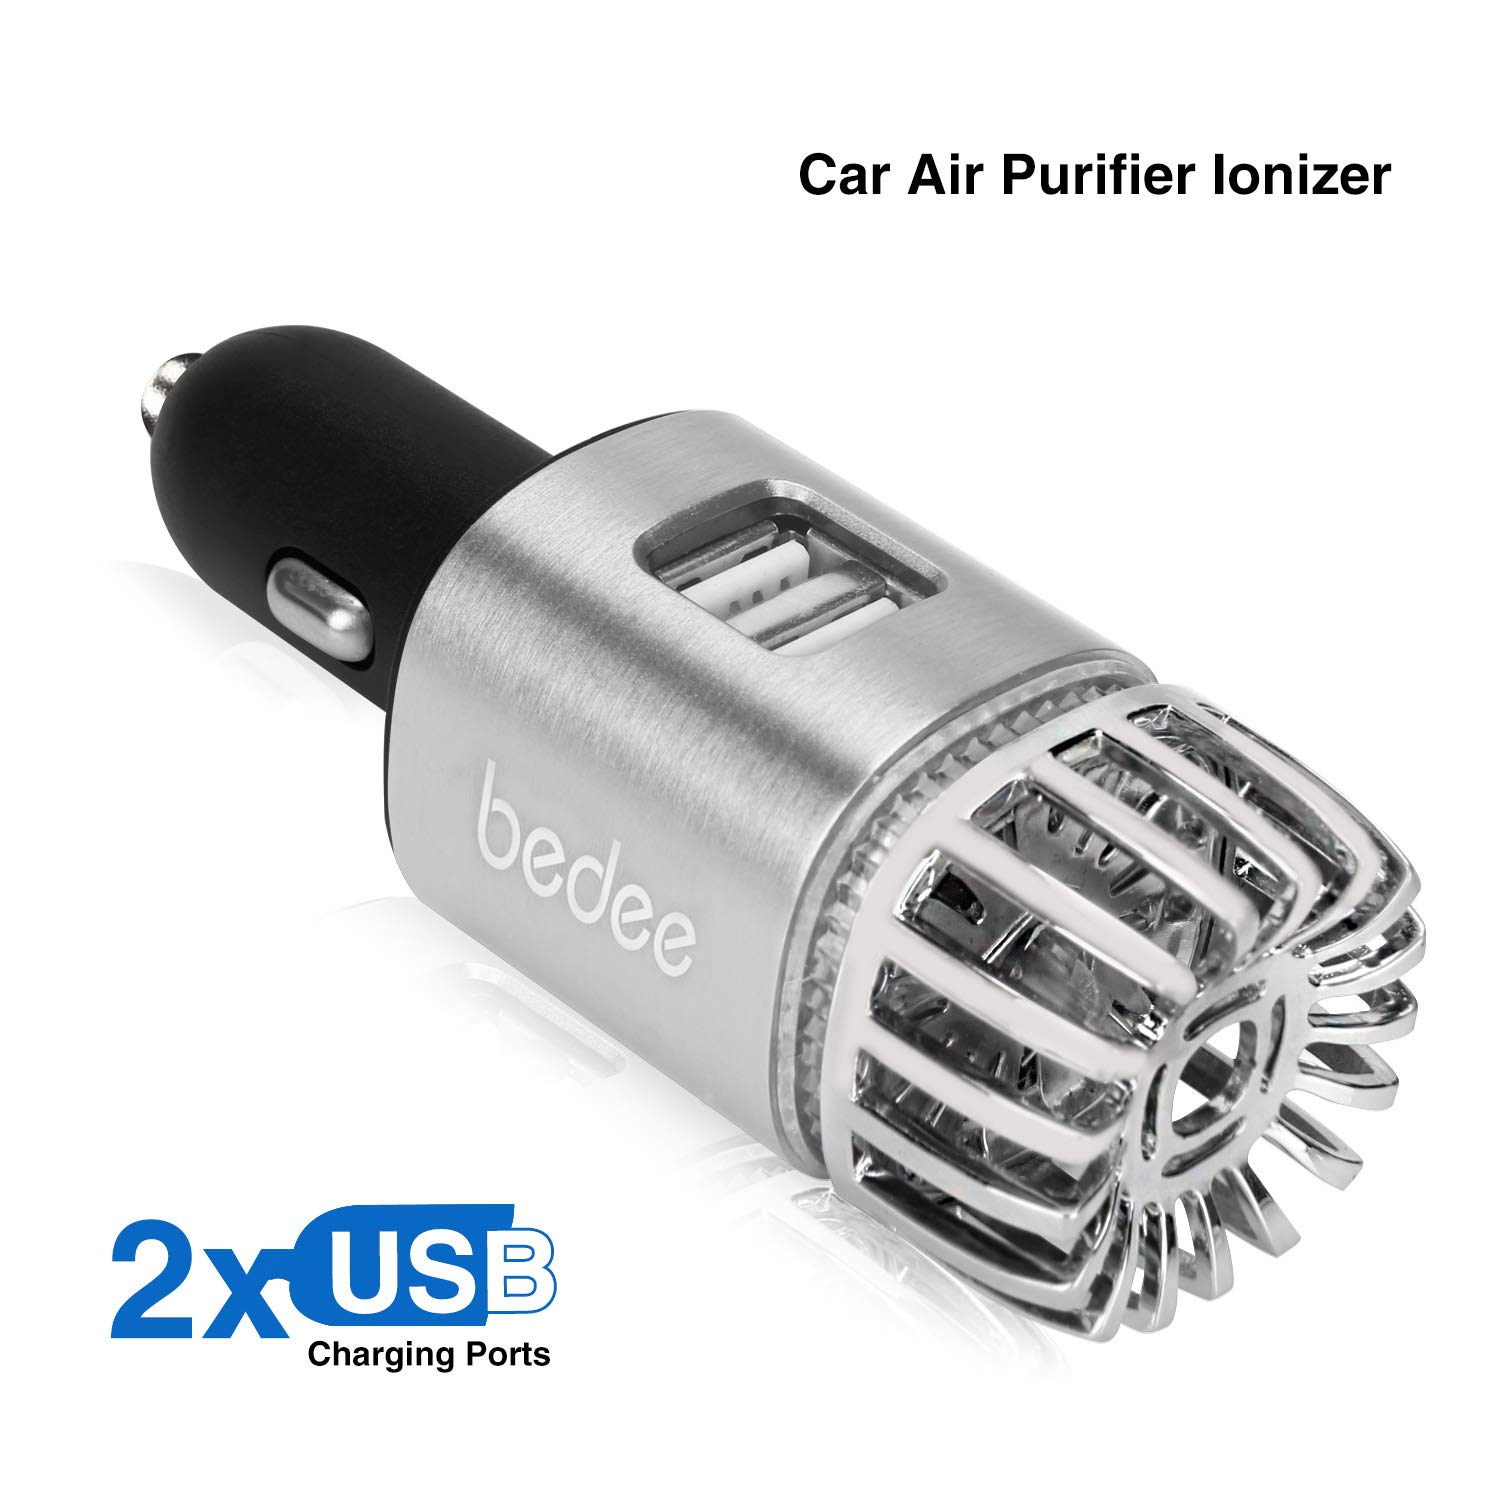 Car Air Purifier Air Freshener 2-in-1 Ionic Air Purifier Ionizer Deodorizer with Dual USB Cellphone Charger Remove Dust, Pollen, Smoke, Mold,Food & Pet Smell, Bacteria,Odors, Portable Travel Charger